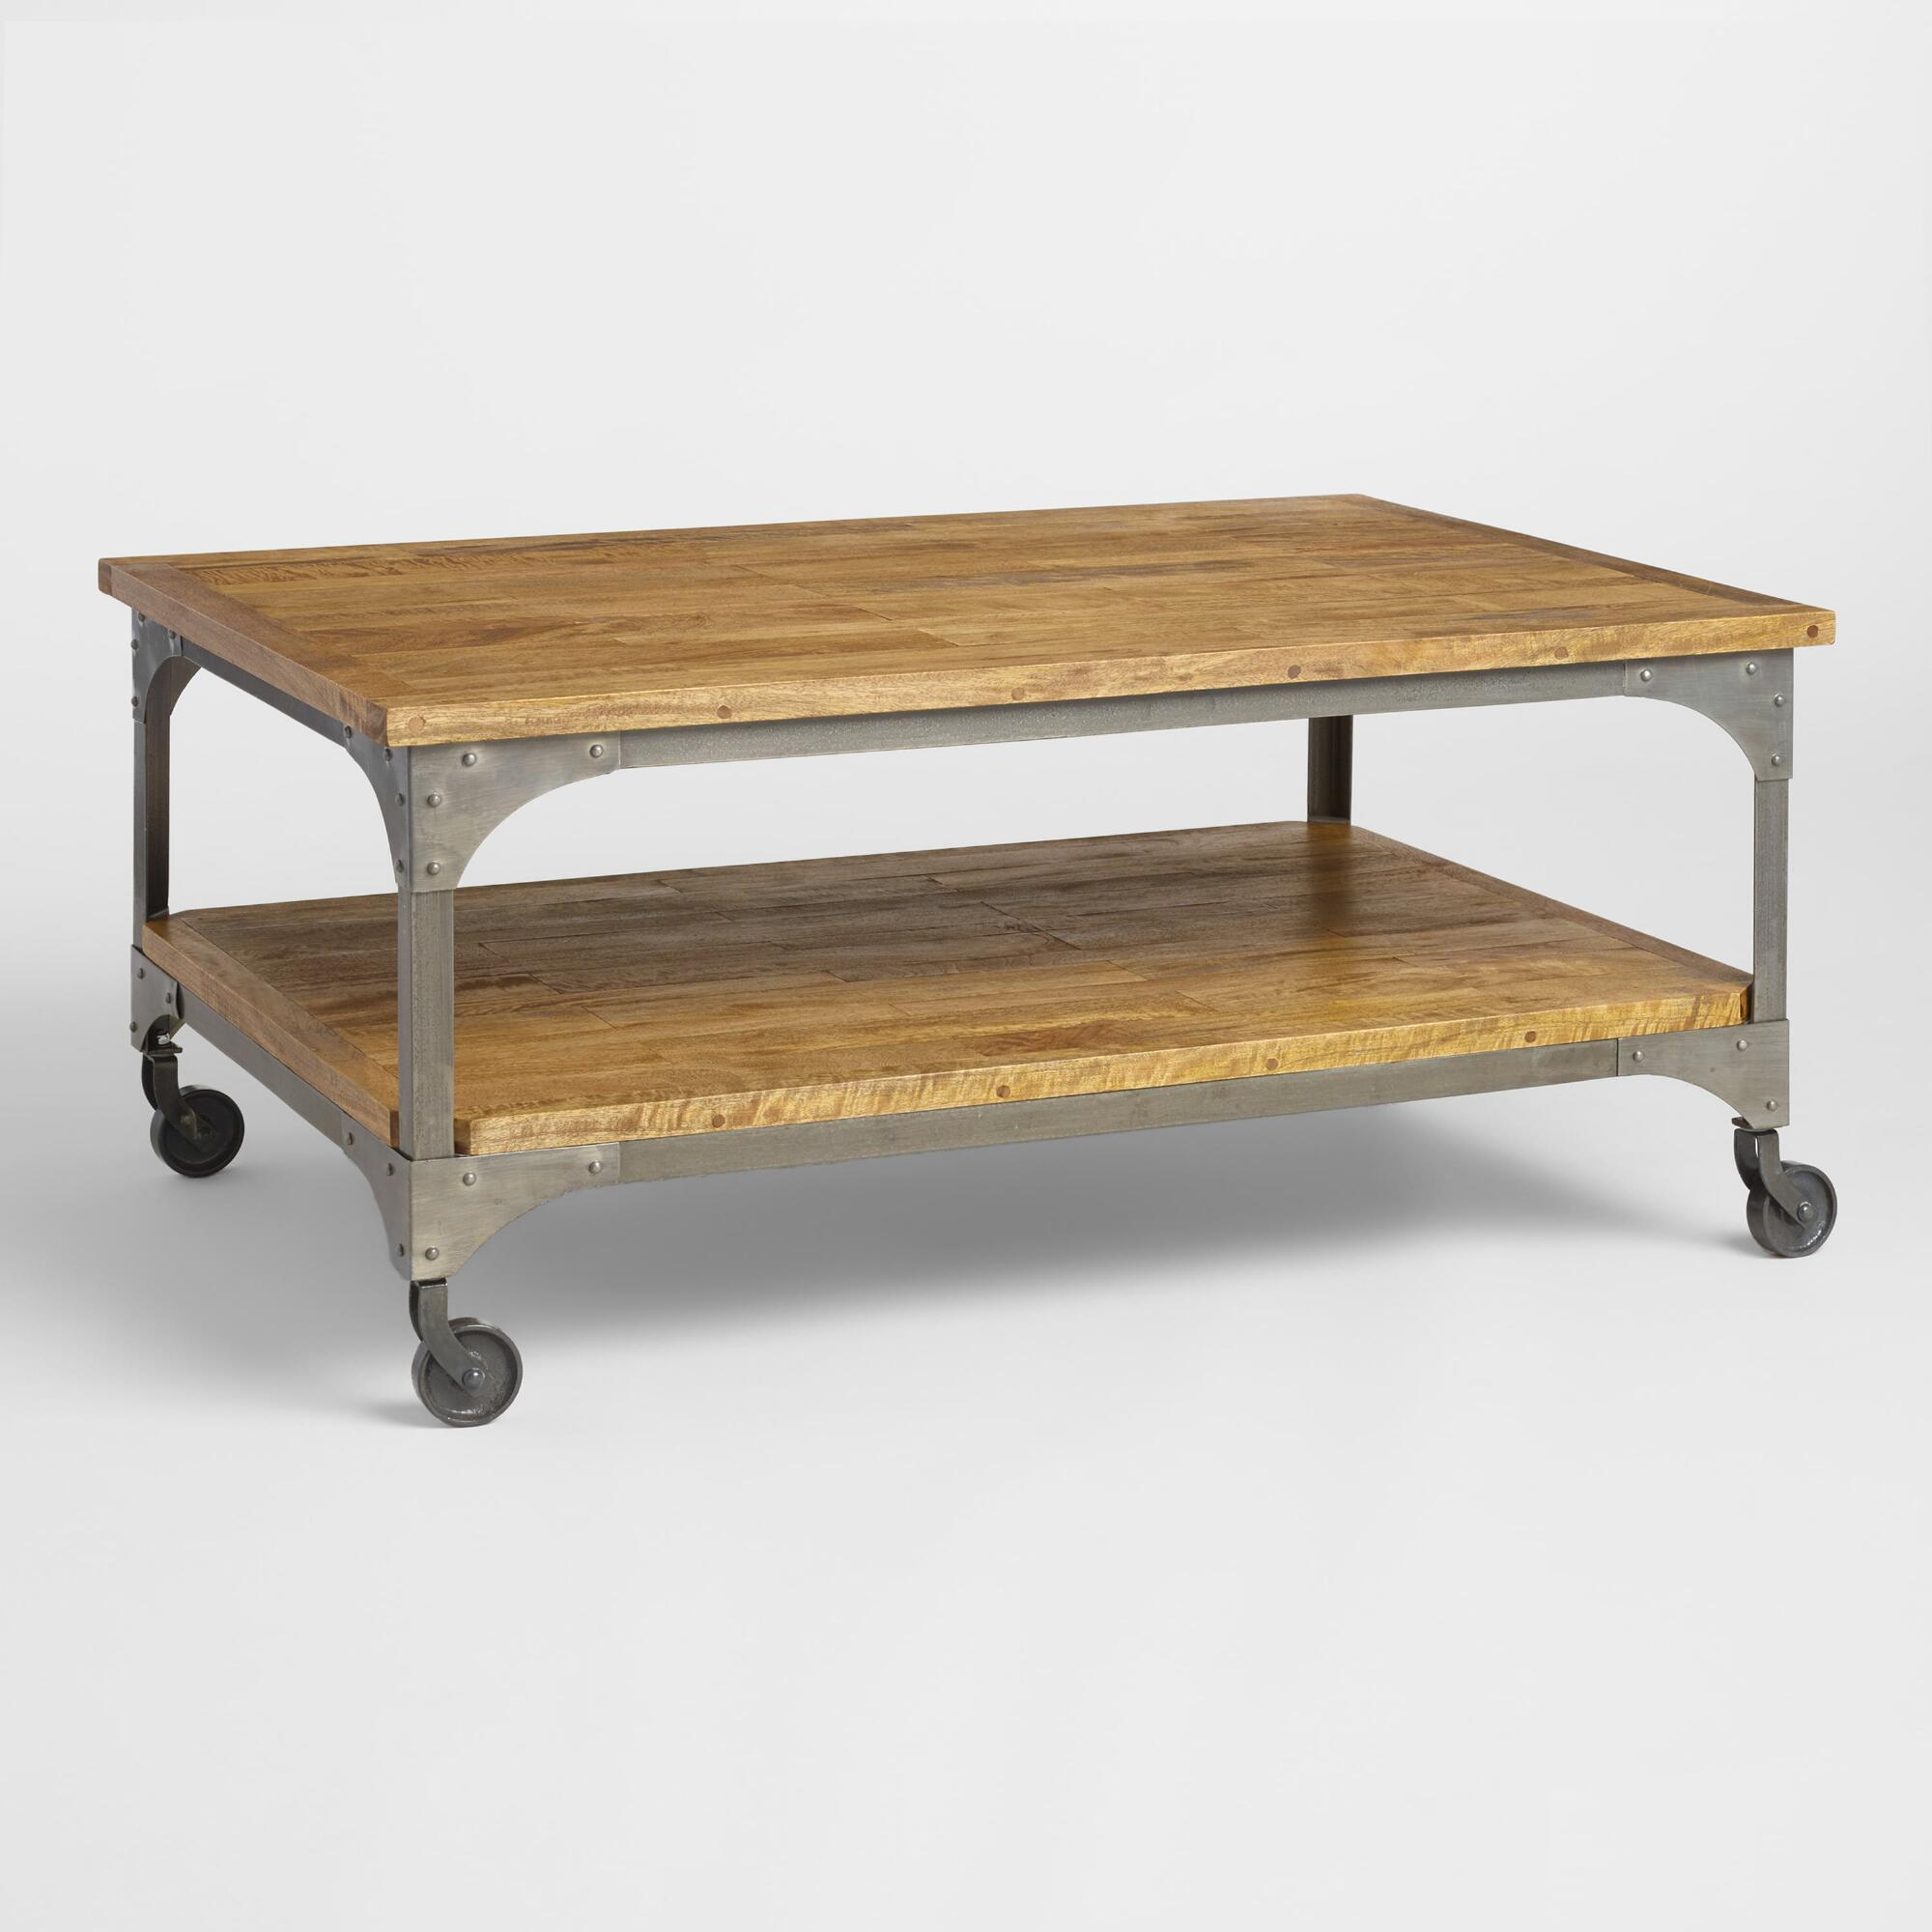 Wood and Metal Aiden Coffee Table: Brown/Metallic by World Market